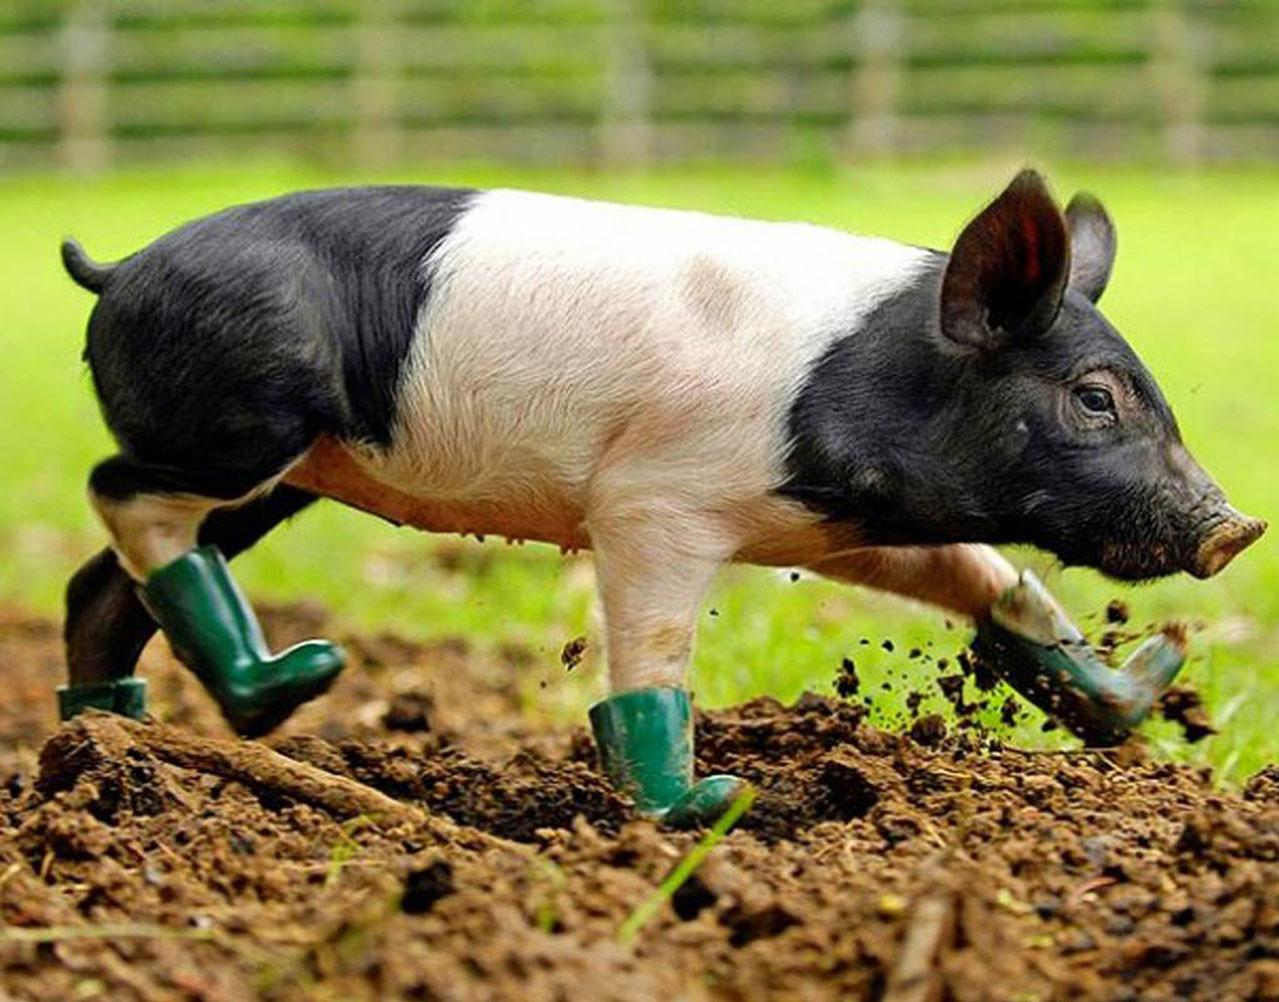 best Pig wallpapers images on Pinterest